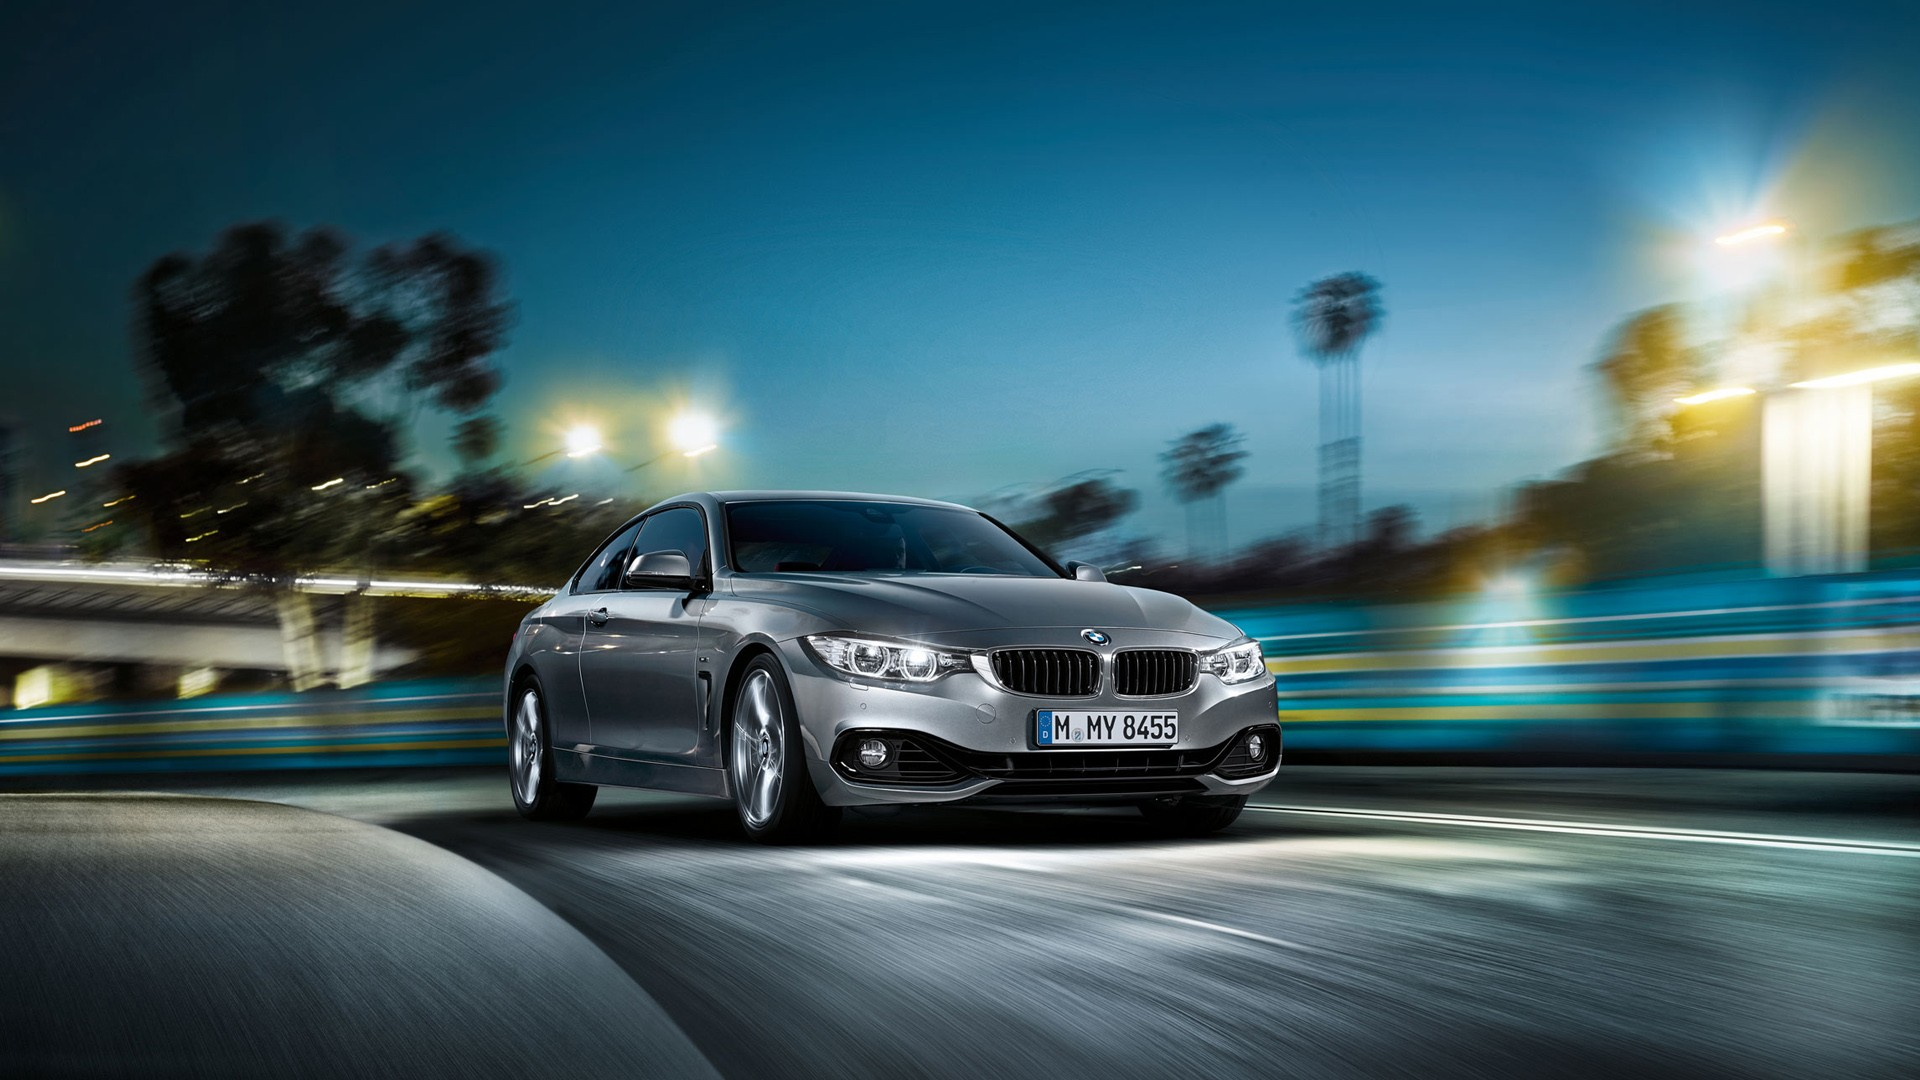 Bmw 4 Series Coupe 2014 Wallpaper Hd Car Wallpapers Id